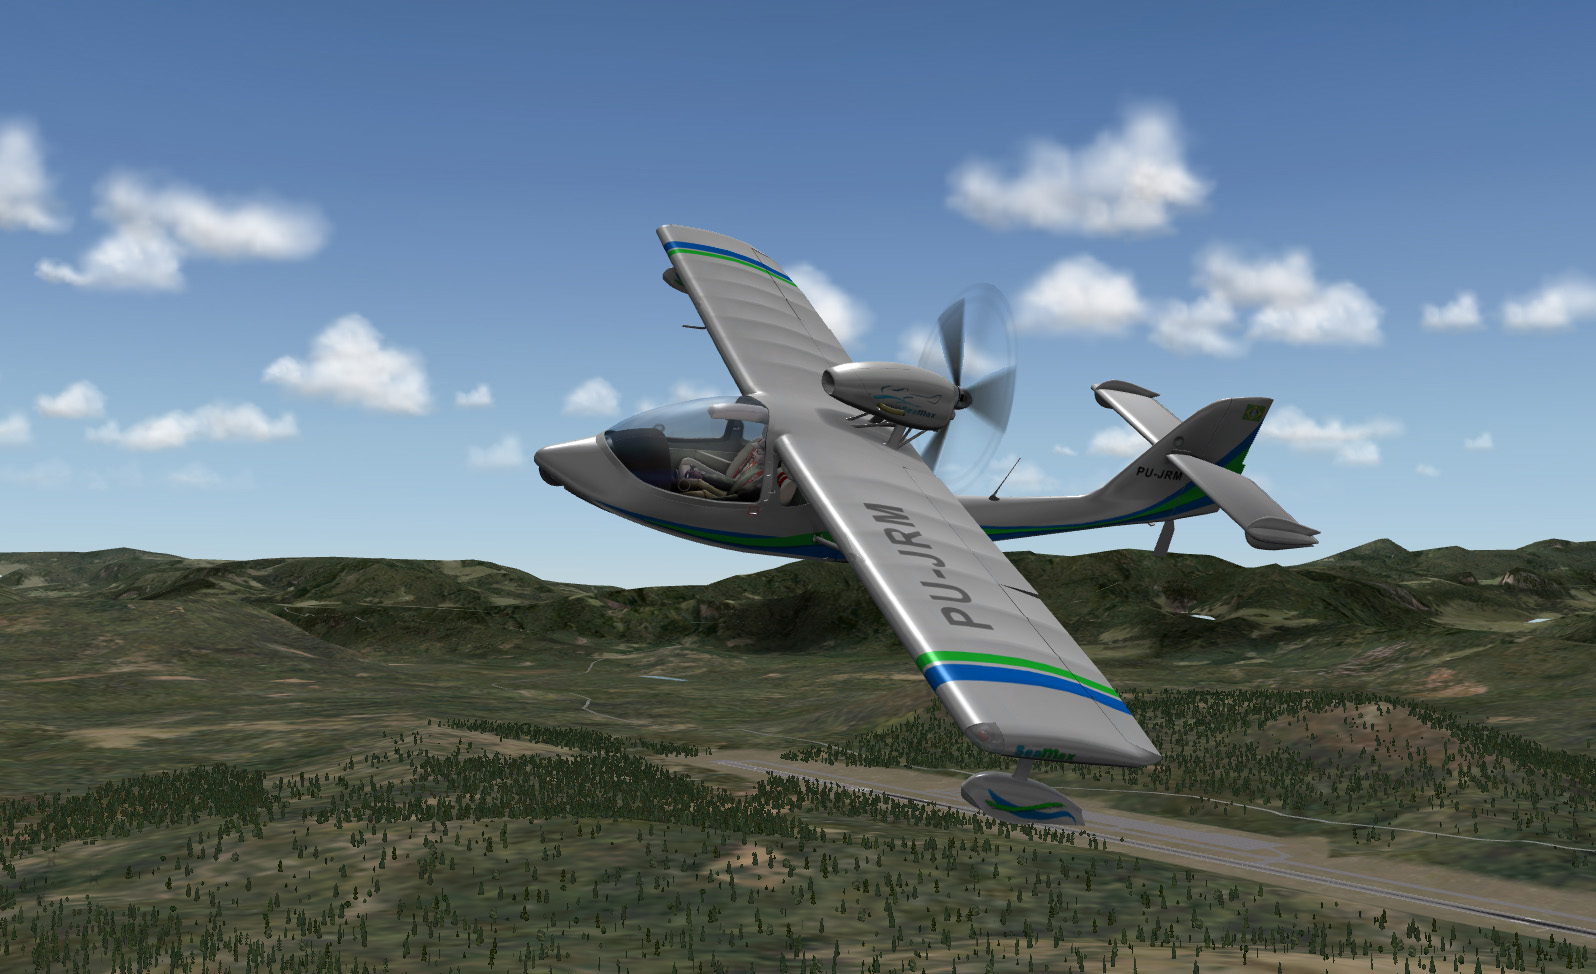 X-Plane - Seamax Aircraft, side view 2